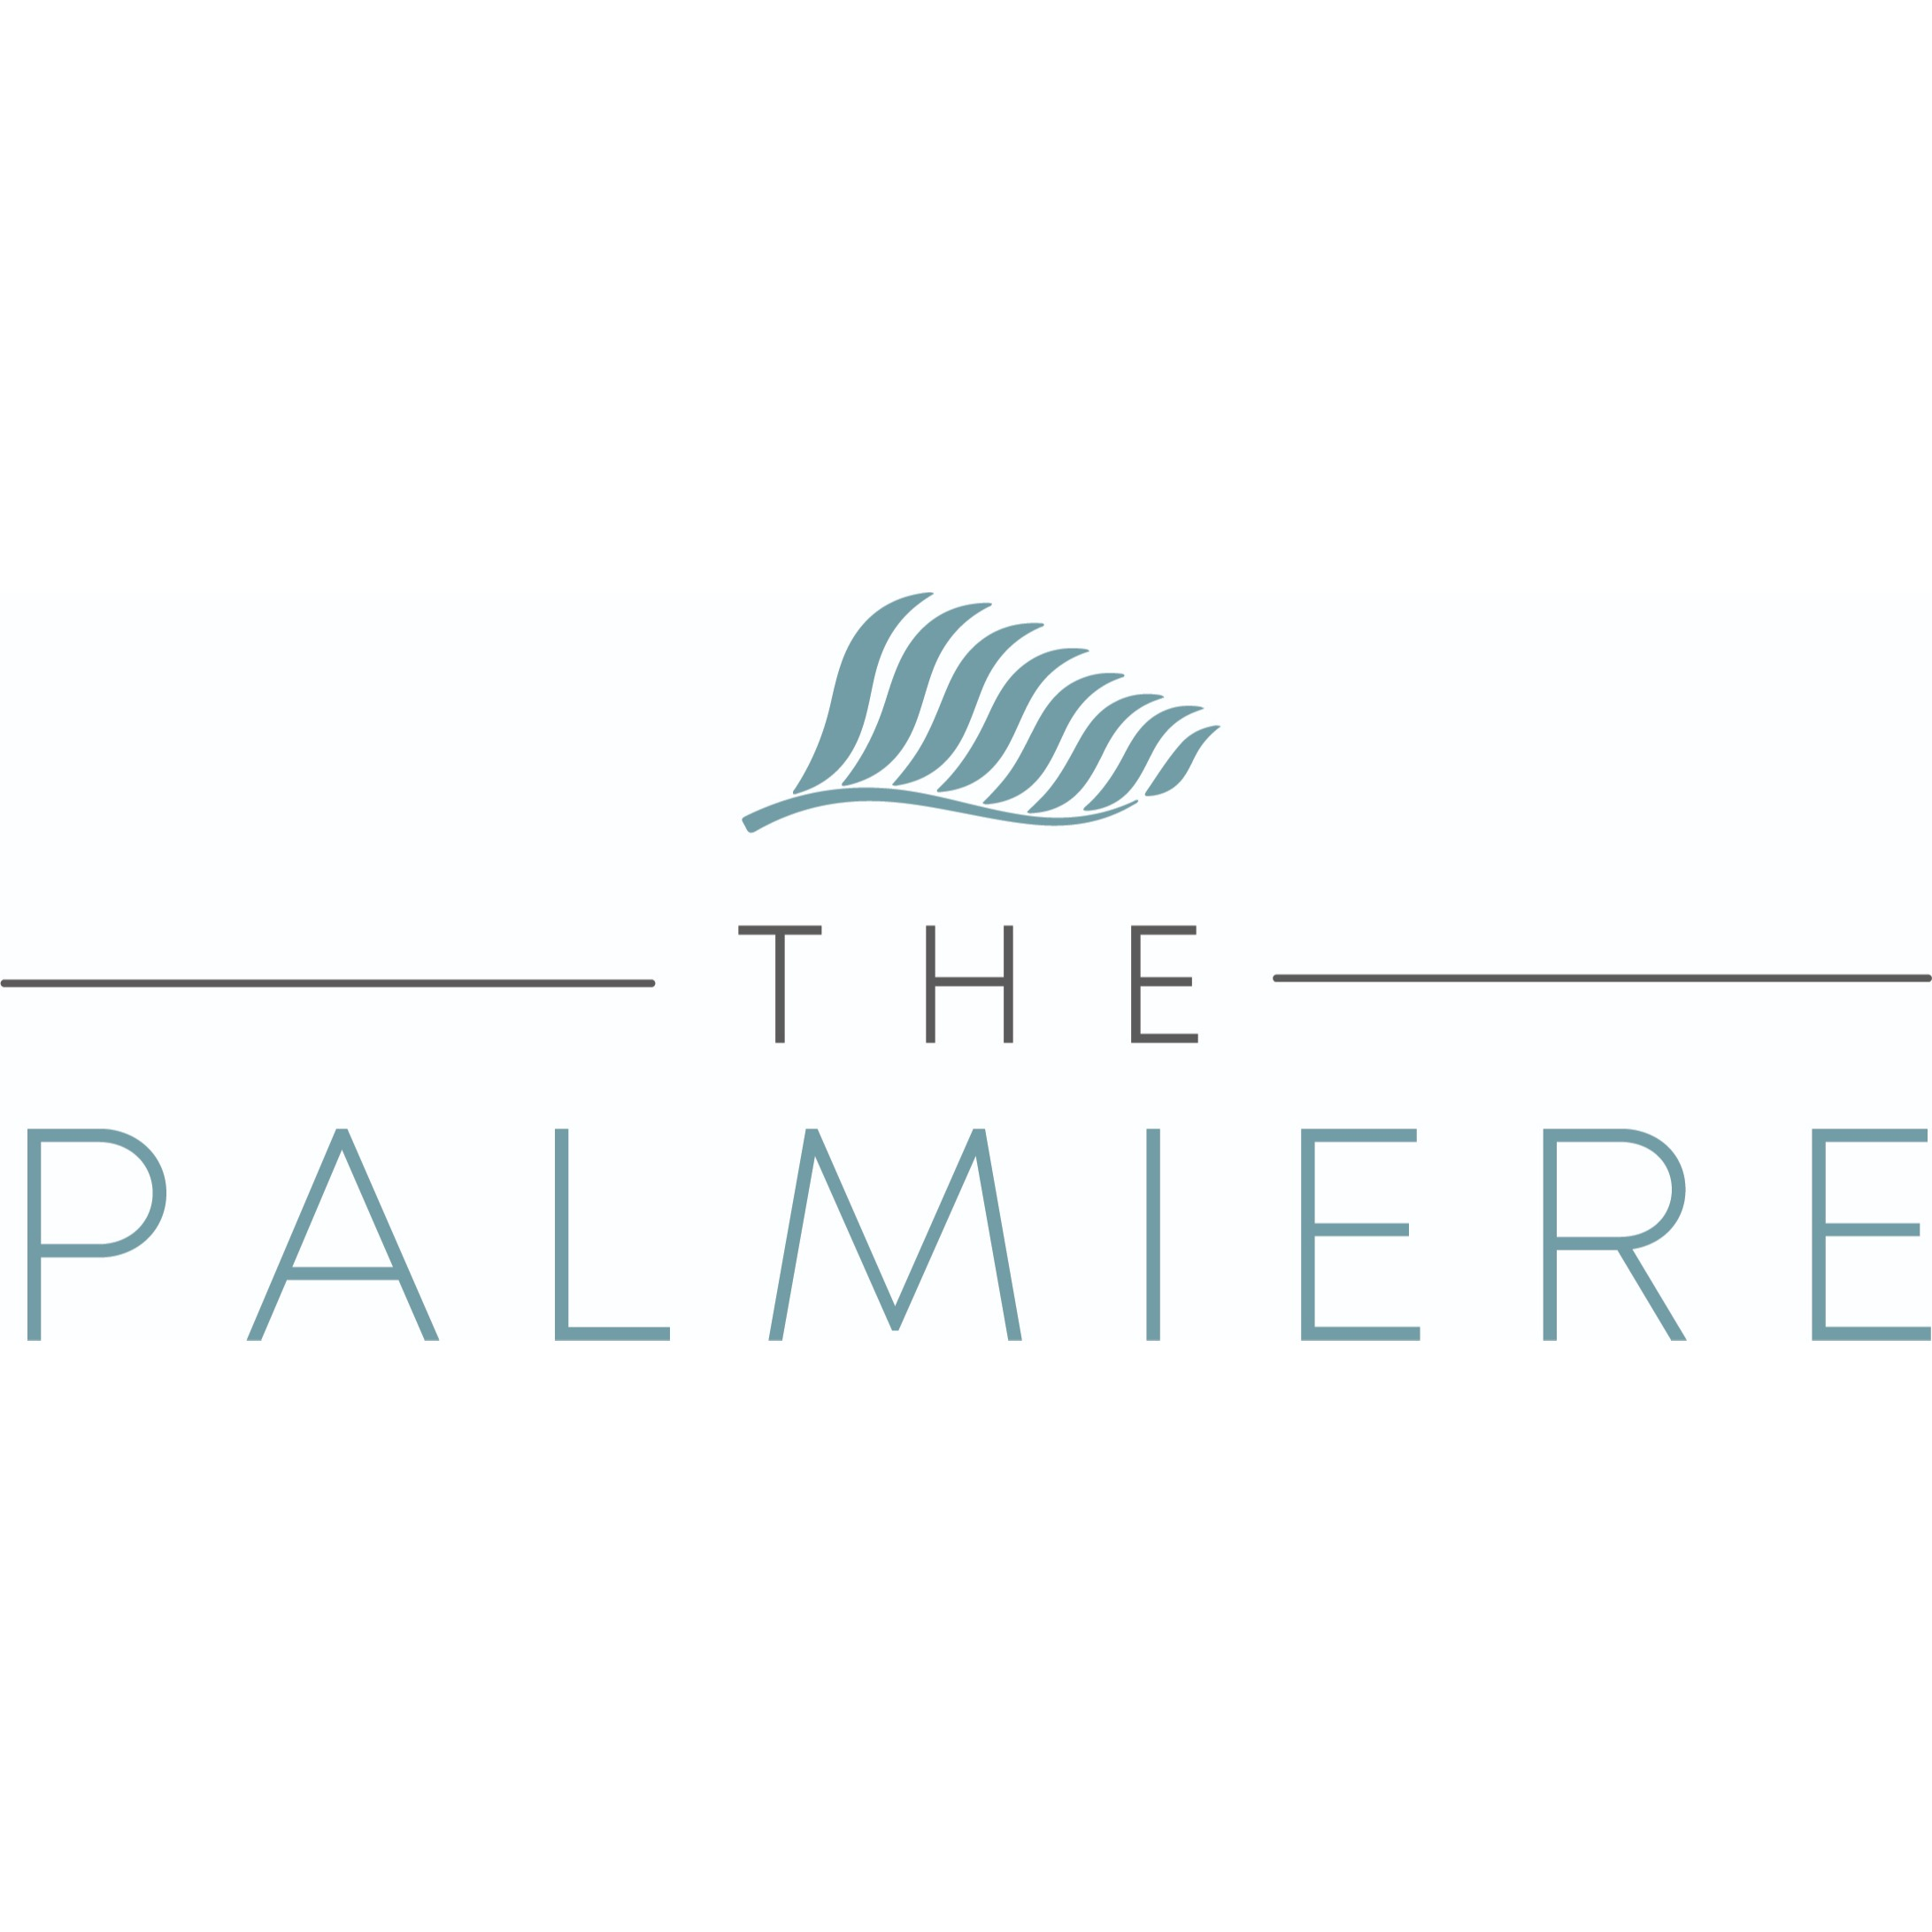 The Palmiere